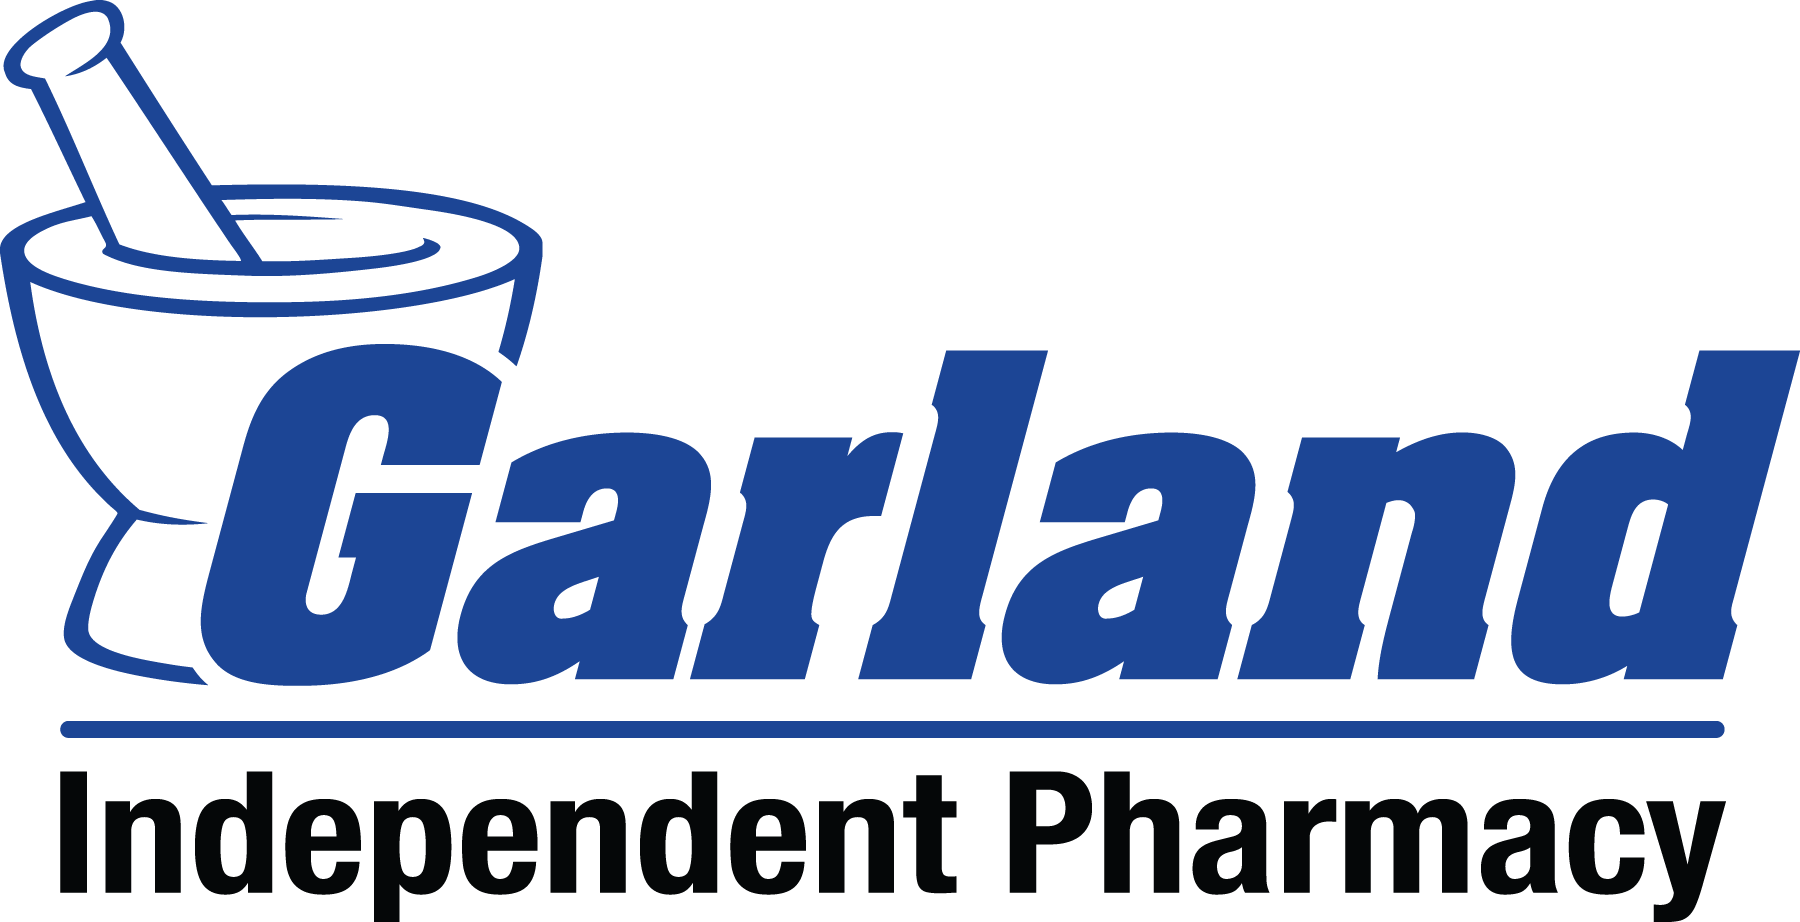 Garland independent pharmacy logo